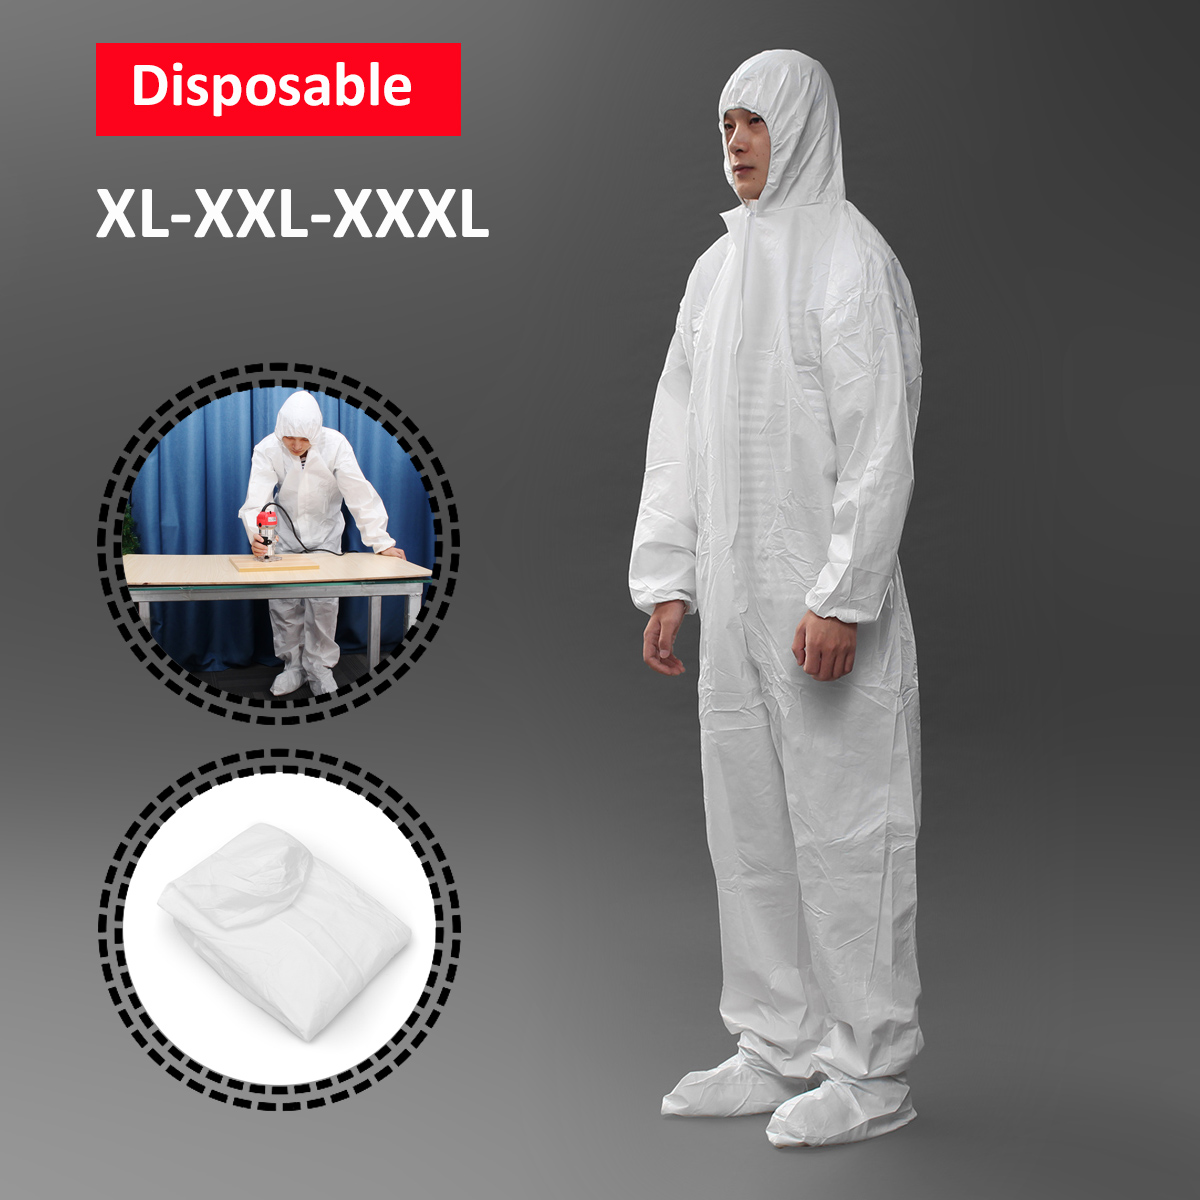 White Safety Clothing Work Clothes Conjoined With Hood Cap Chemical Disposable Protective Clothing Suit Waterproof XL/XXL/XXXL clothing loves синий xl